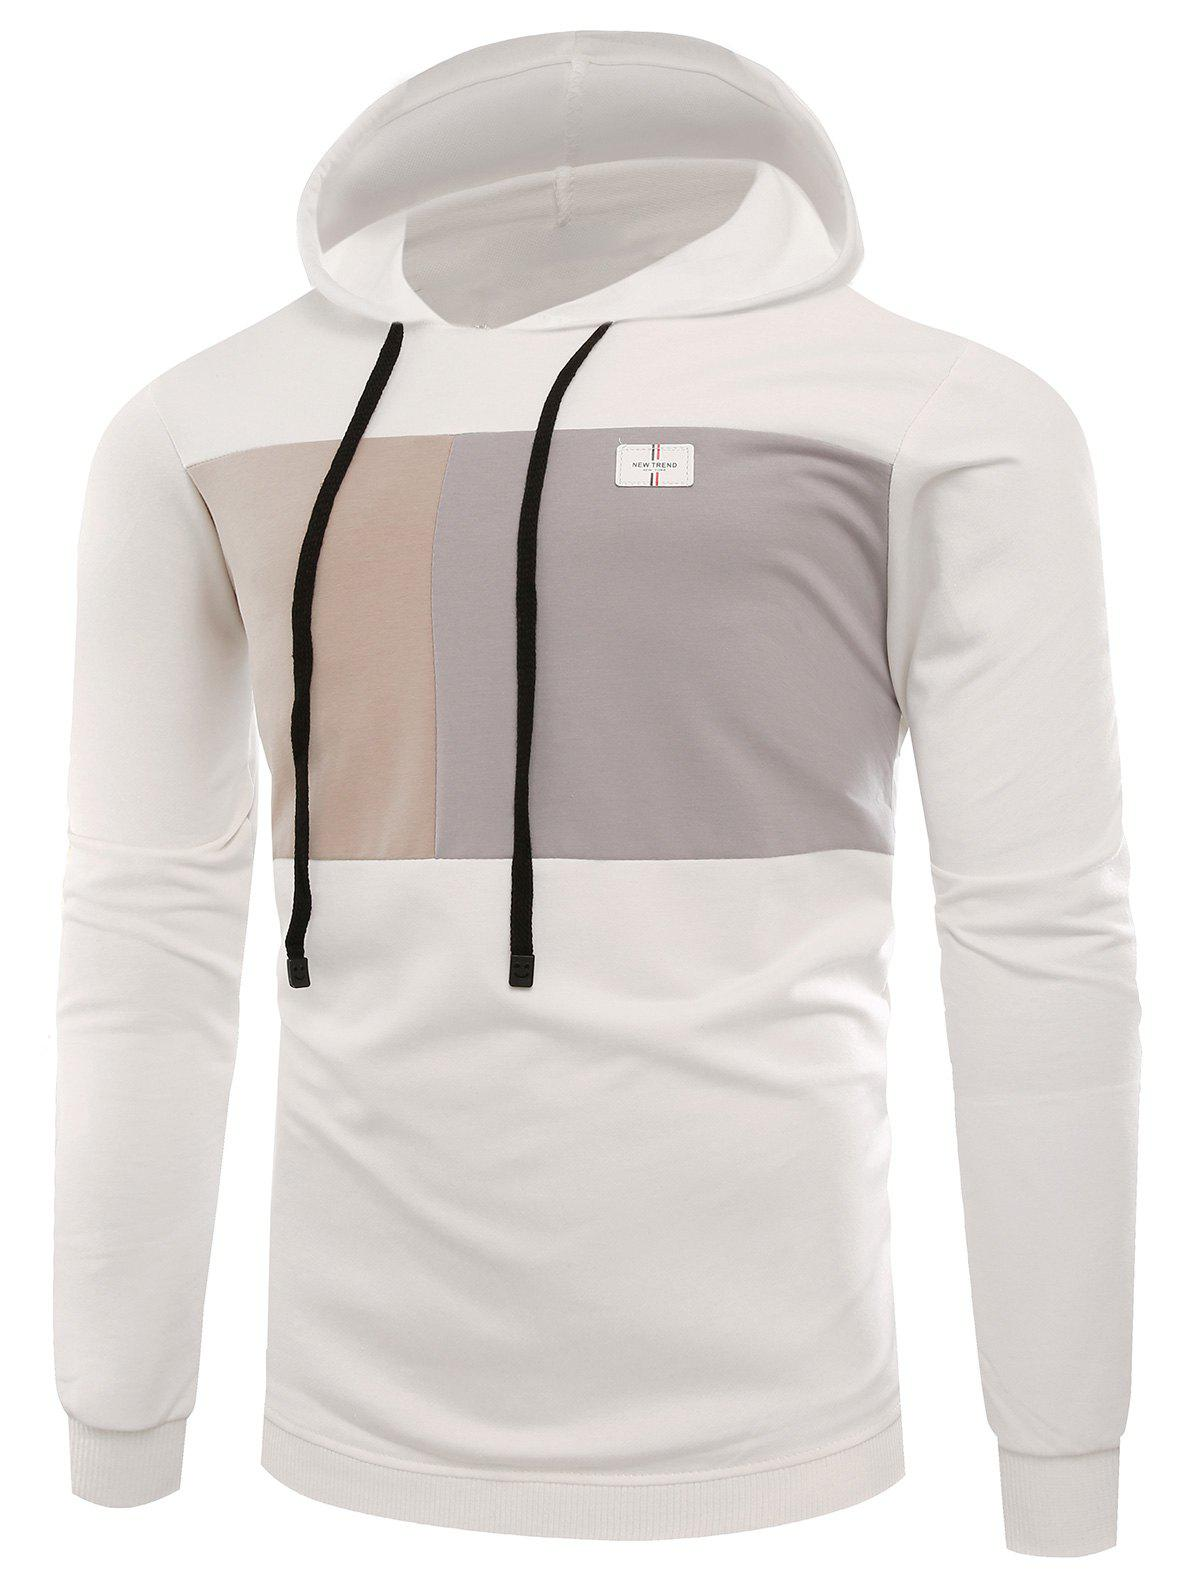 Applique Color Block Pullover HoodieMEN<br><br>Size: M; Color: WHITE; Material: Cotton,Spandex; Clothes Type: Hoodie; Shirt Length: Regular; Sleeve Length: Full; Style: Fashion; Patterns: Color Block; Thickness: Regular; Occasion: Casual ,Daily Use,Going Out; Weight: 0.4100kg; Package Contents: 1 x Hoodie;